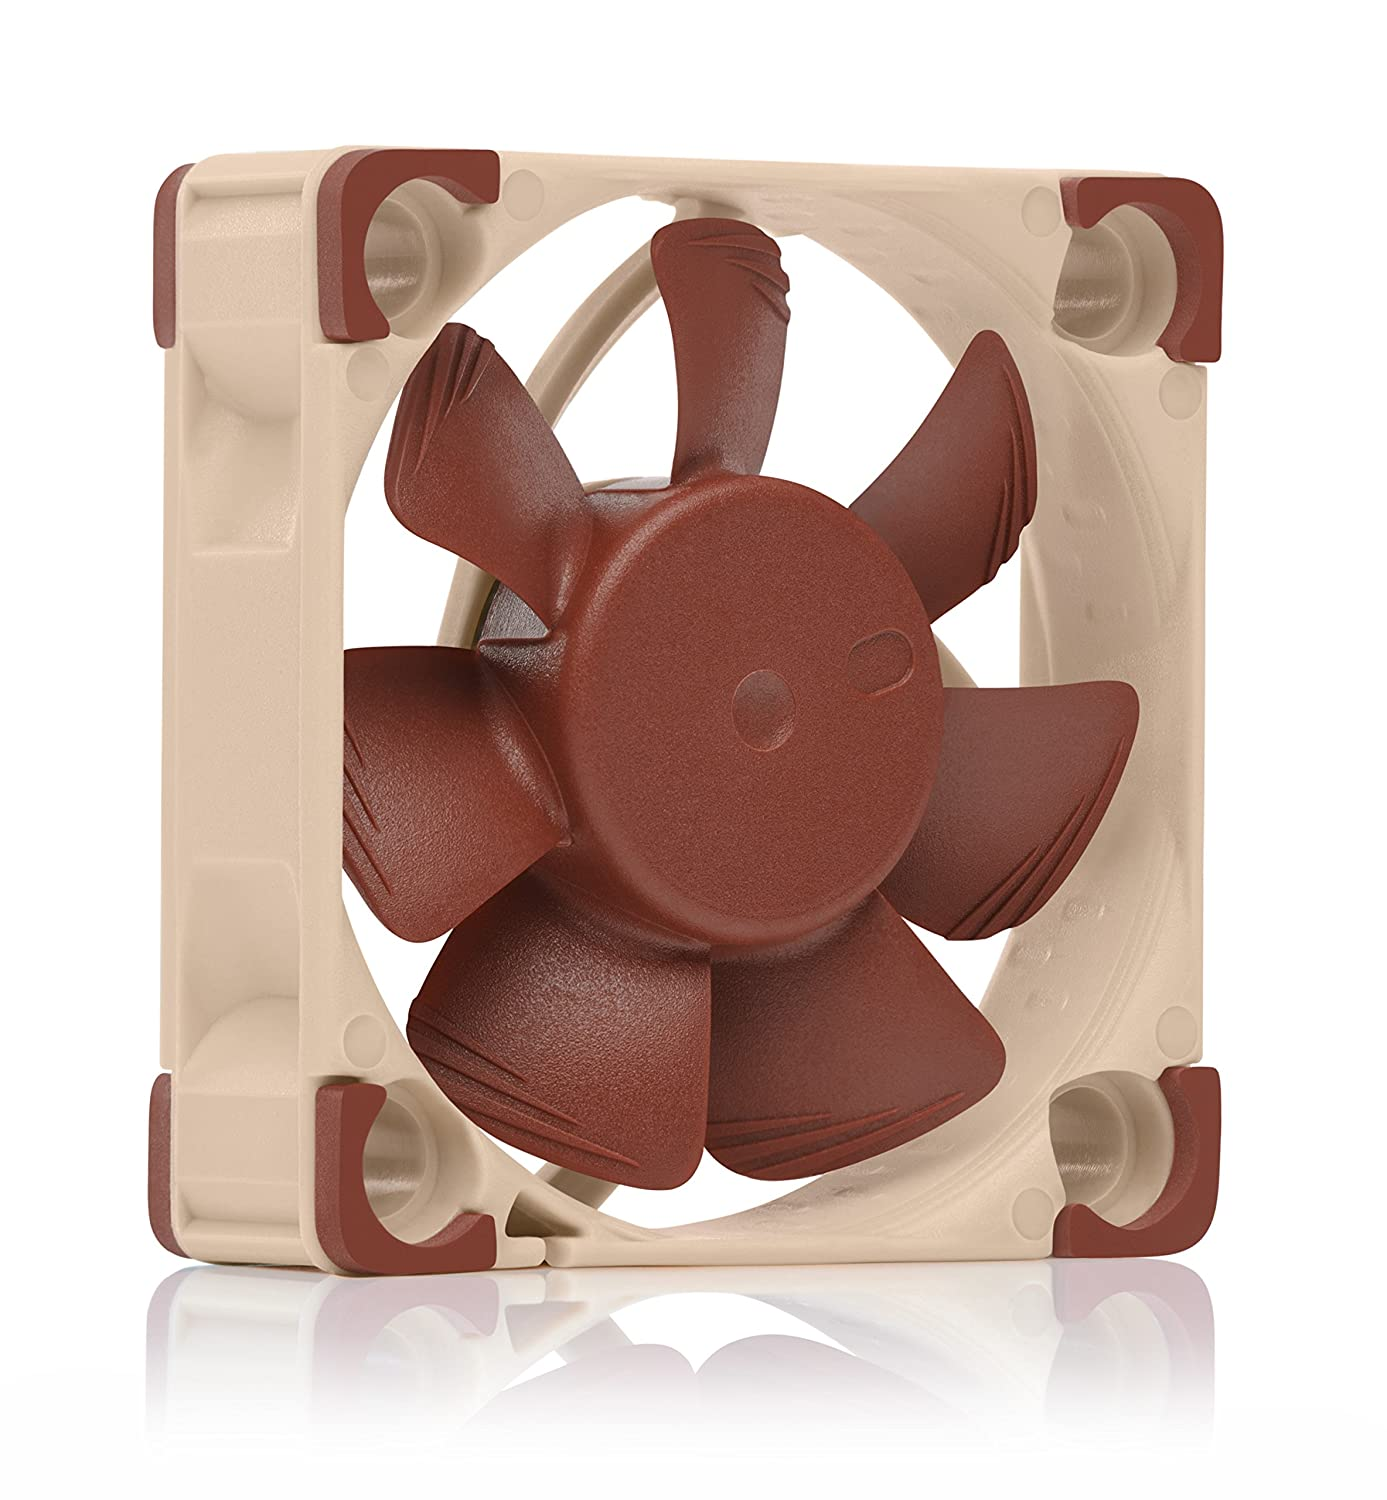 Noctua NF-A4x10 FLX, Premium Quiet Fan, 3-Pin (40x10mm, Brown)